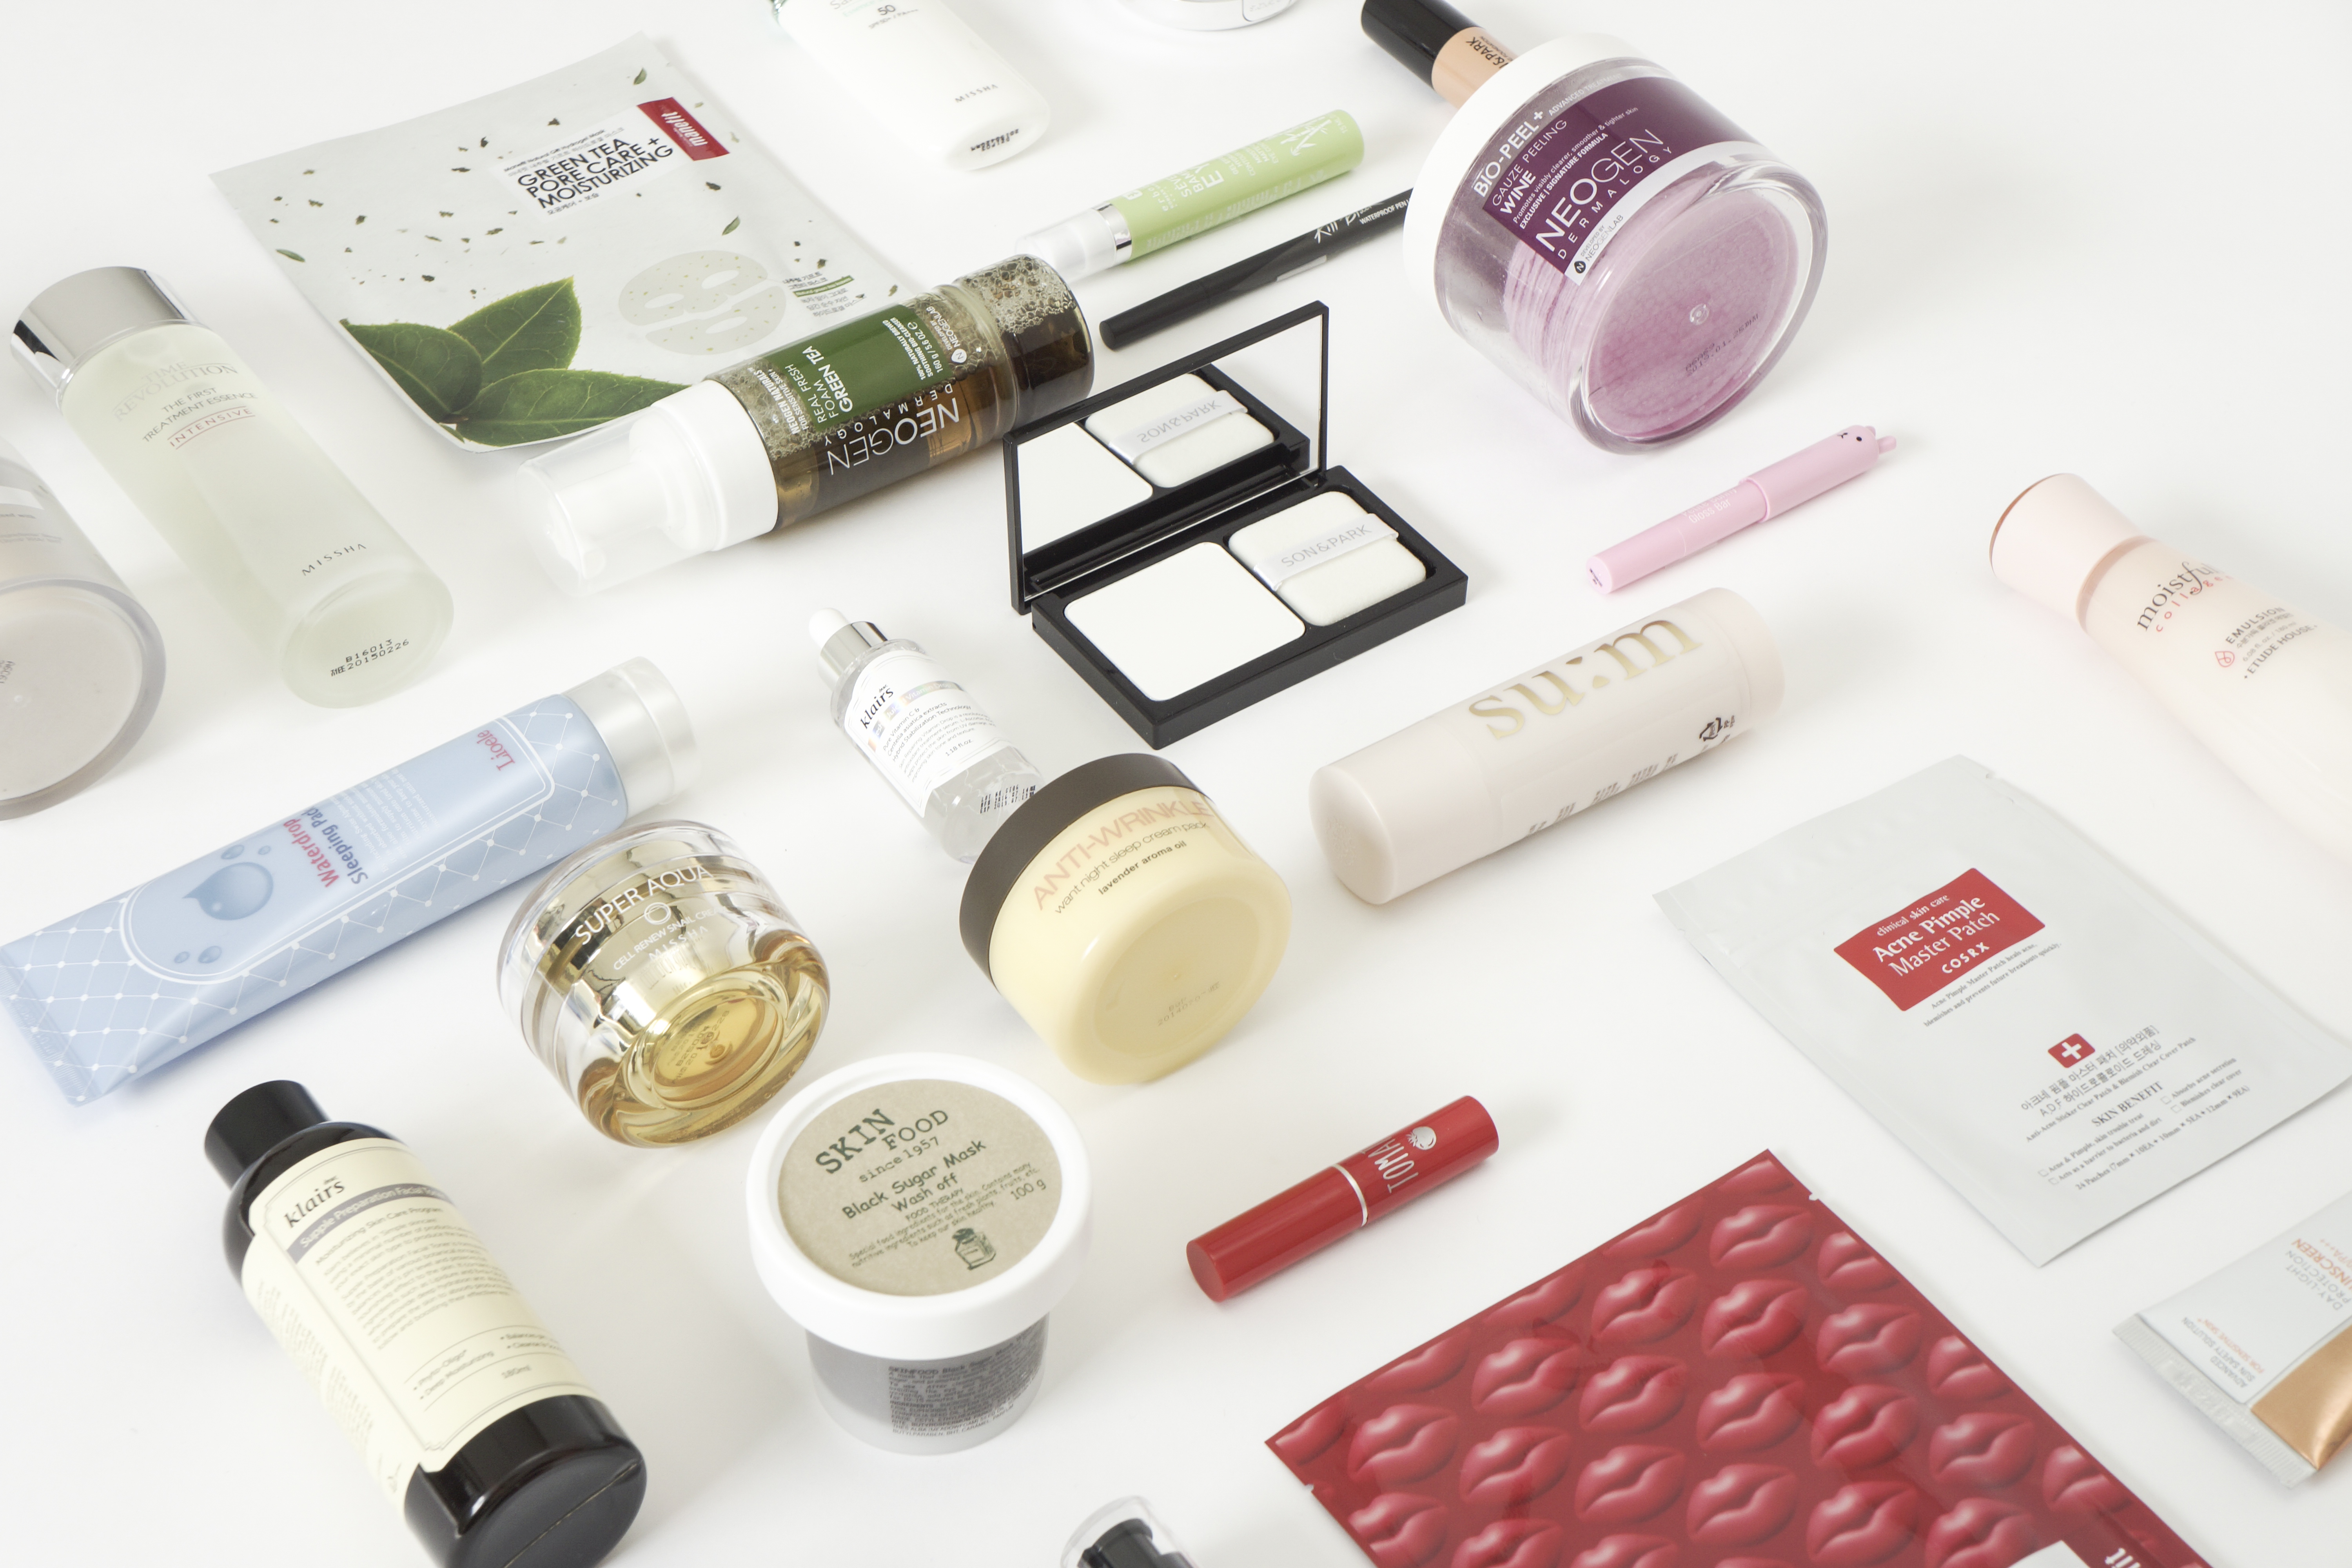 Why No One Single Brand Is Winning K-Beauty - Racked